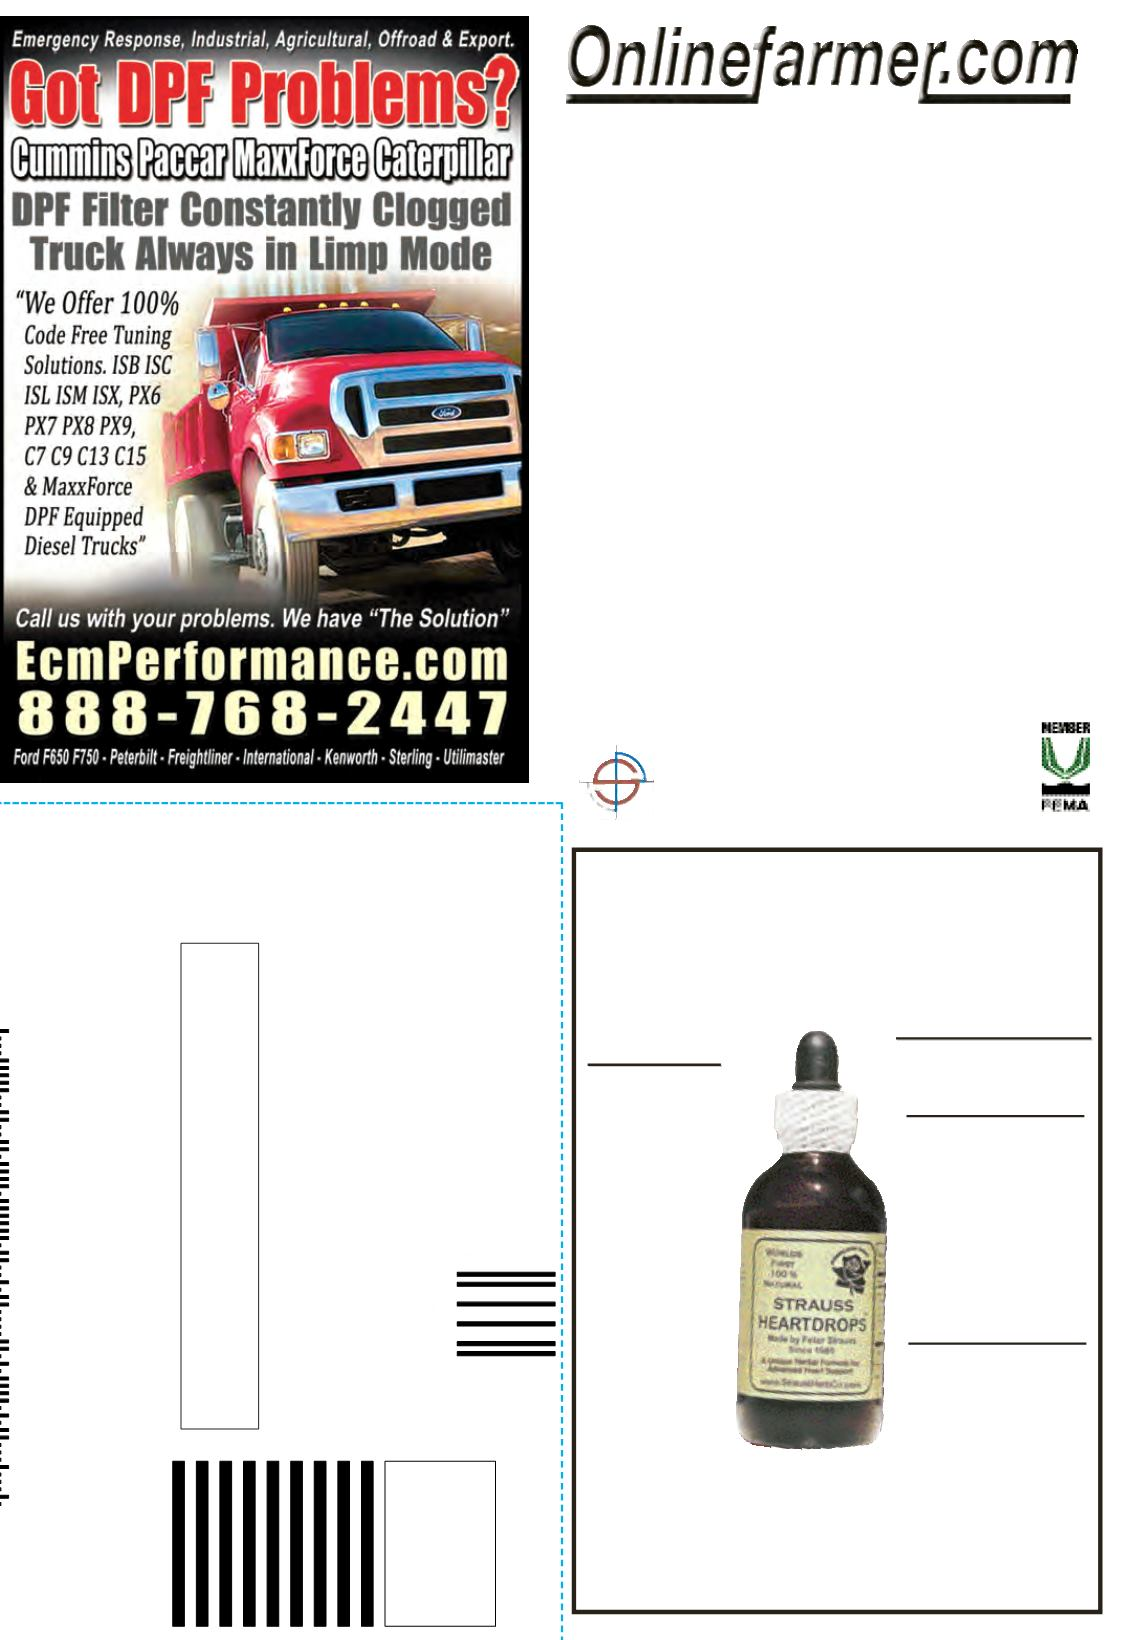 Index of /issues/OnlineFarmer0216/files/assets/common/page-substrates